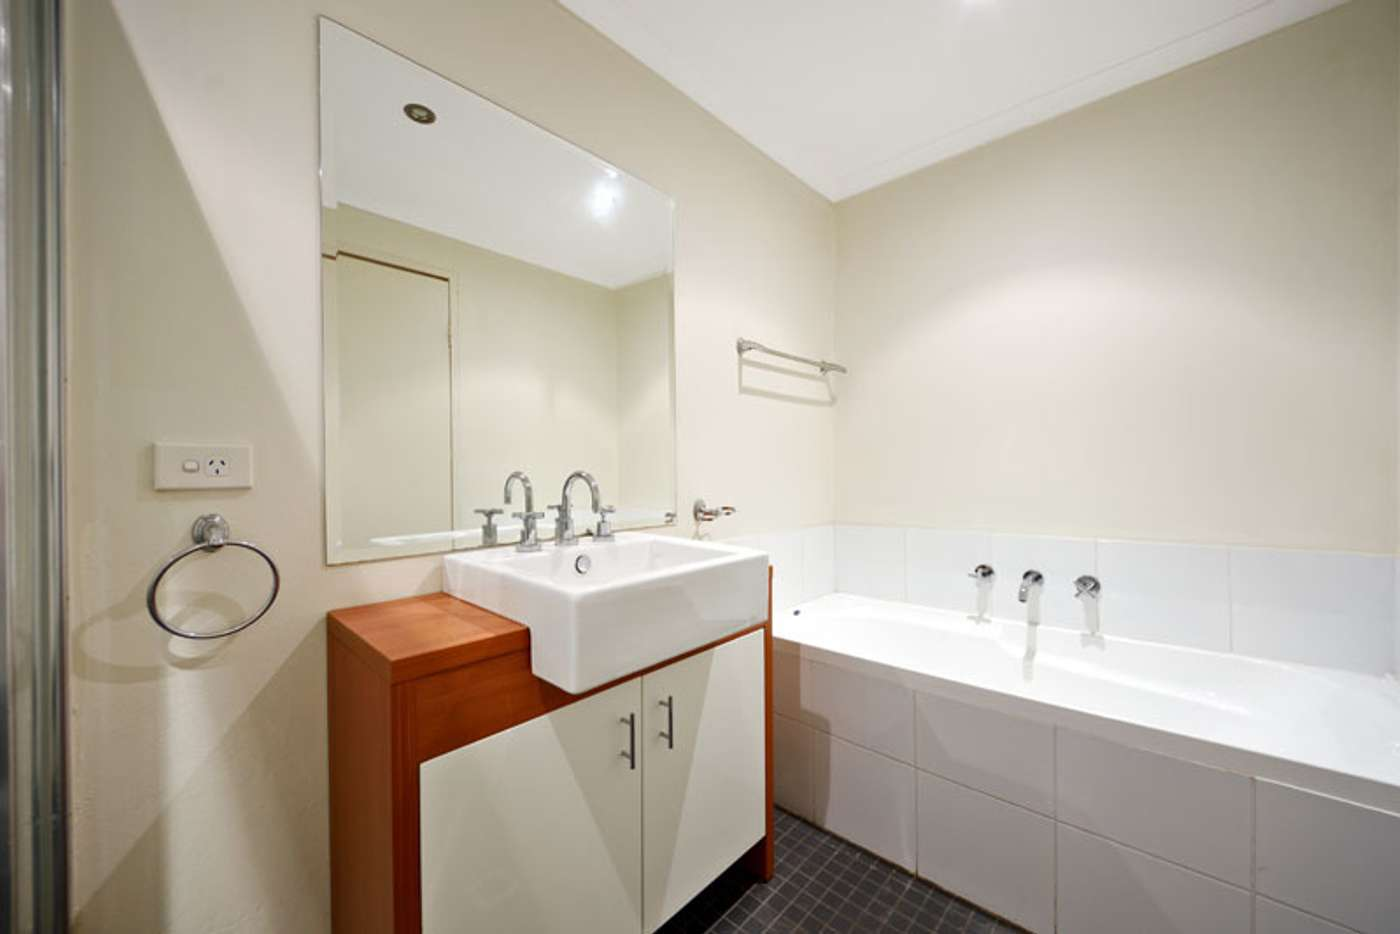 Sixth view of Homely apartment listing, 501/296 Kingsway, Caringbah NSW 2229